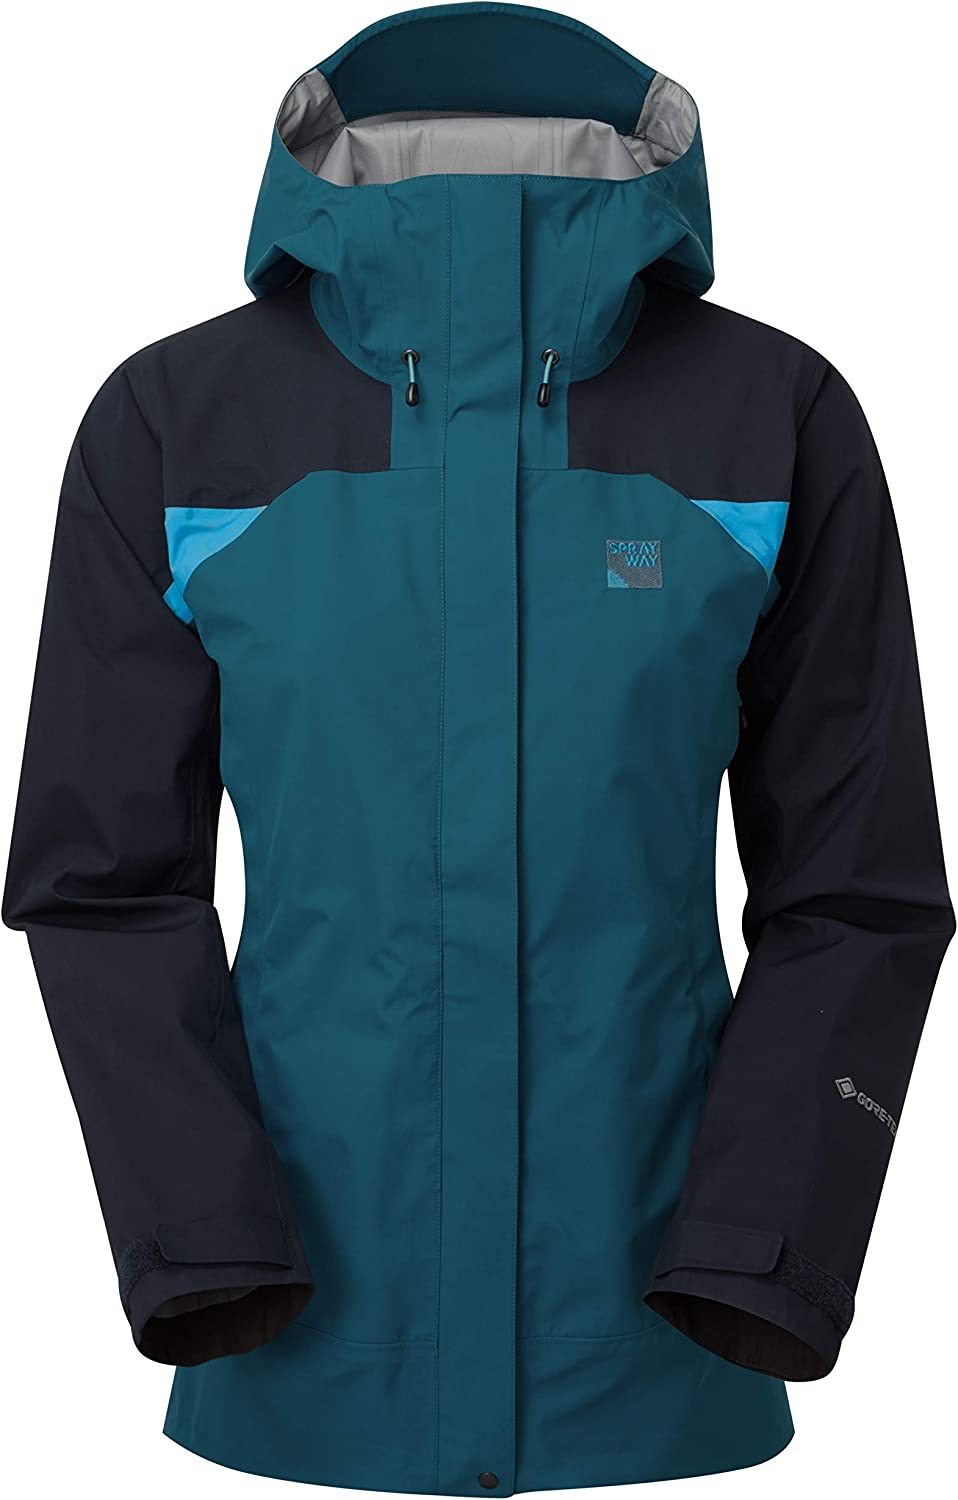 Sprayway Free Shipping Inventory cleanup selling sale New Women's Torridon Jacket W